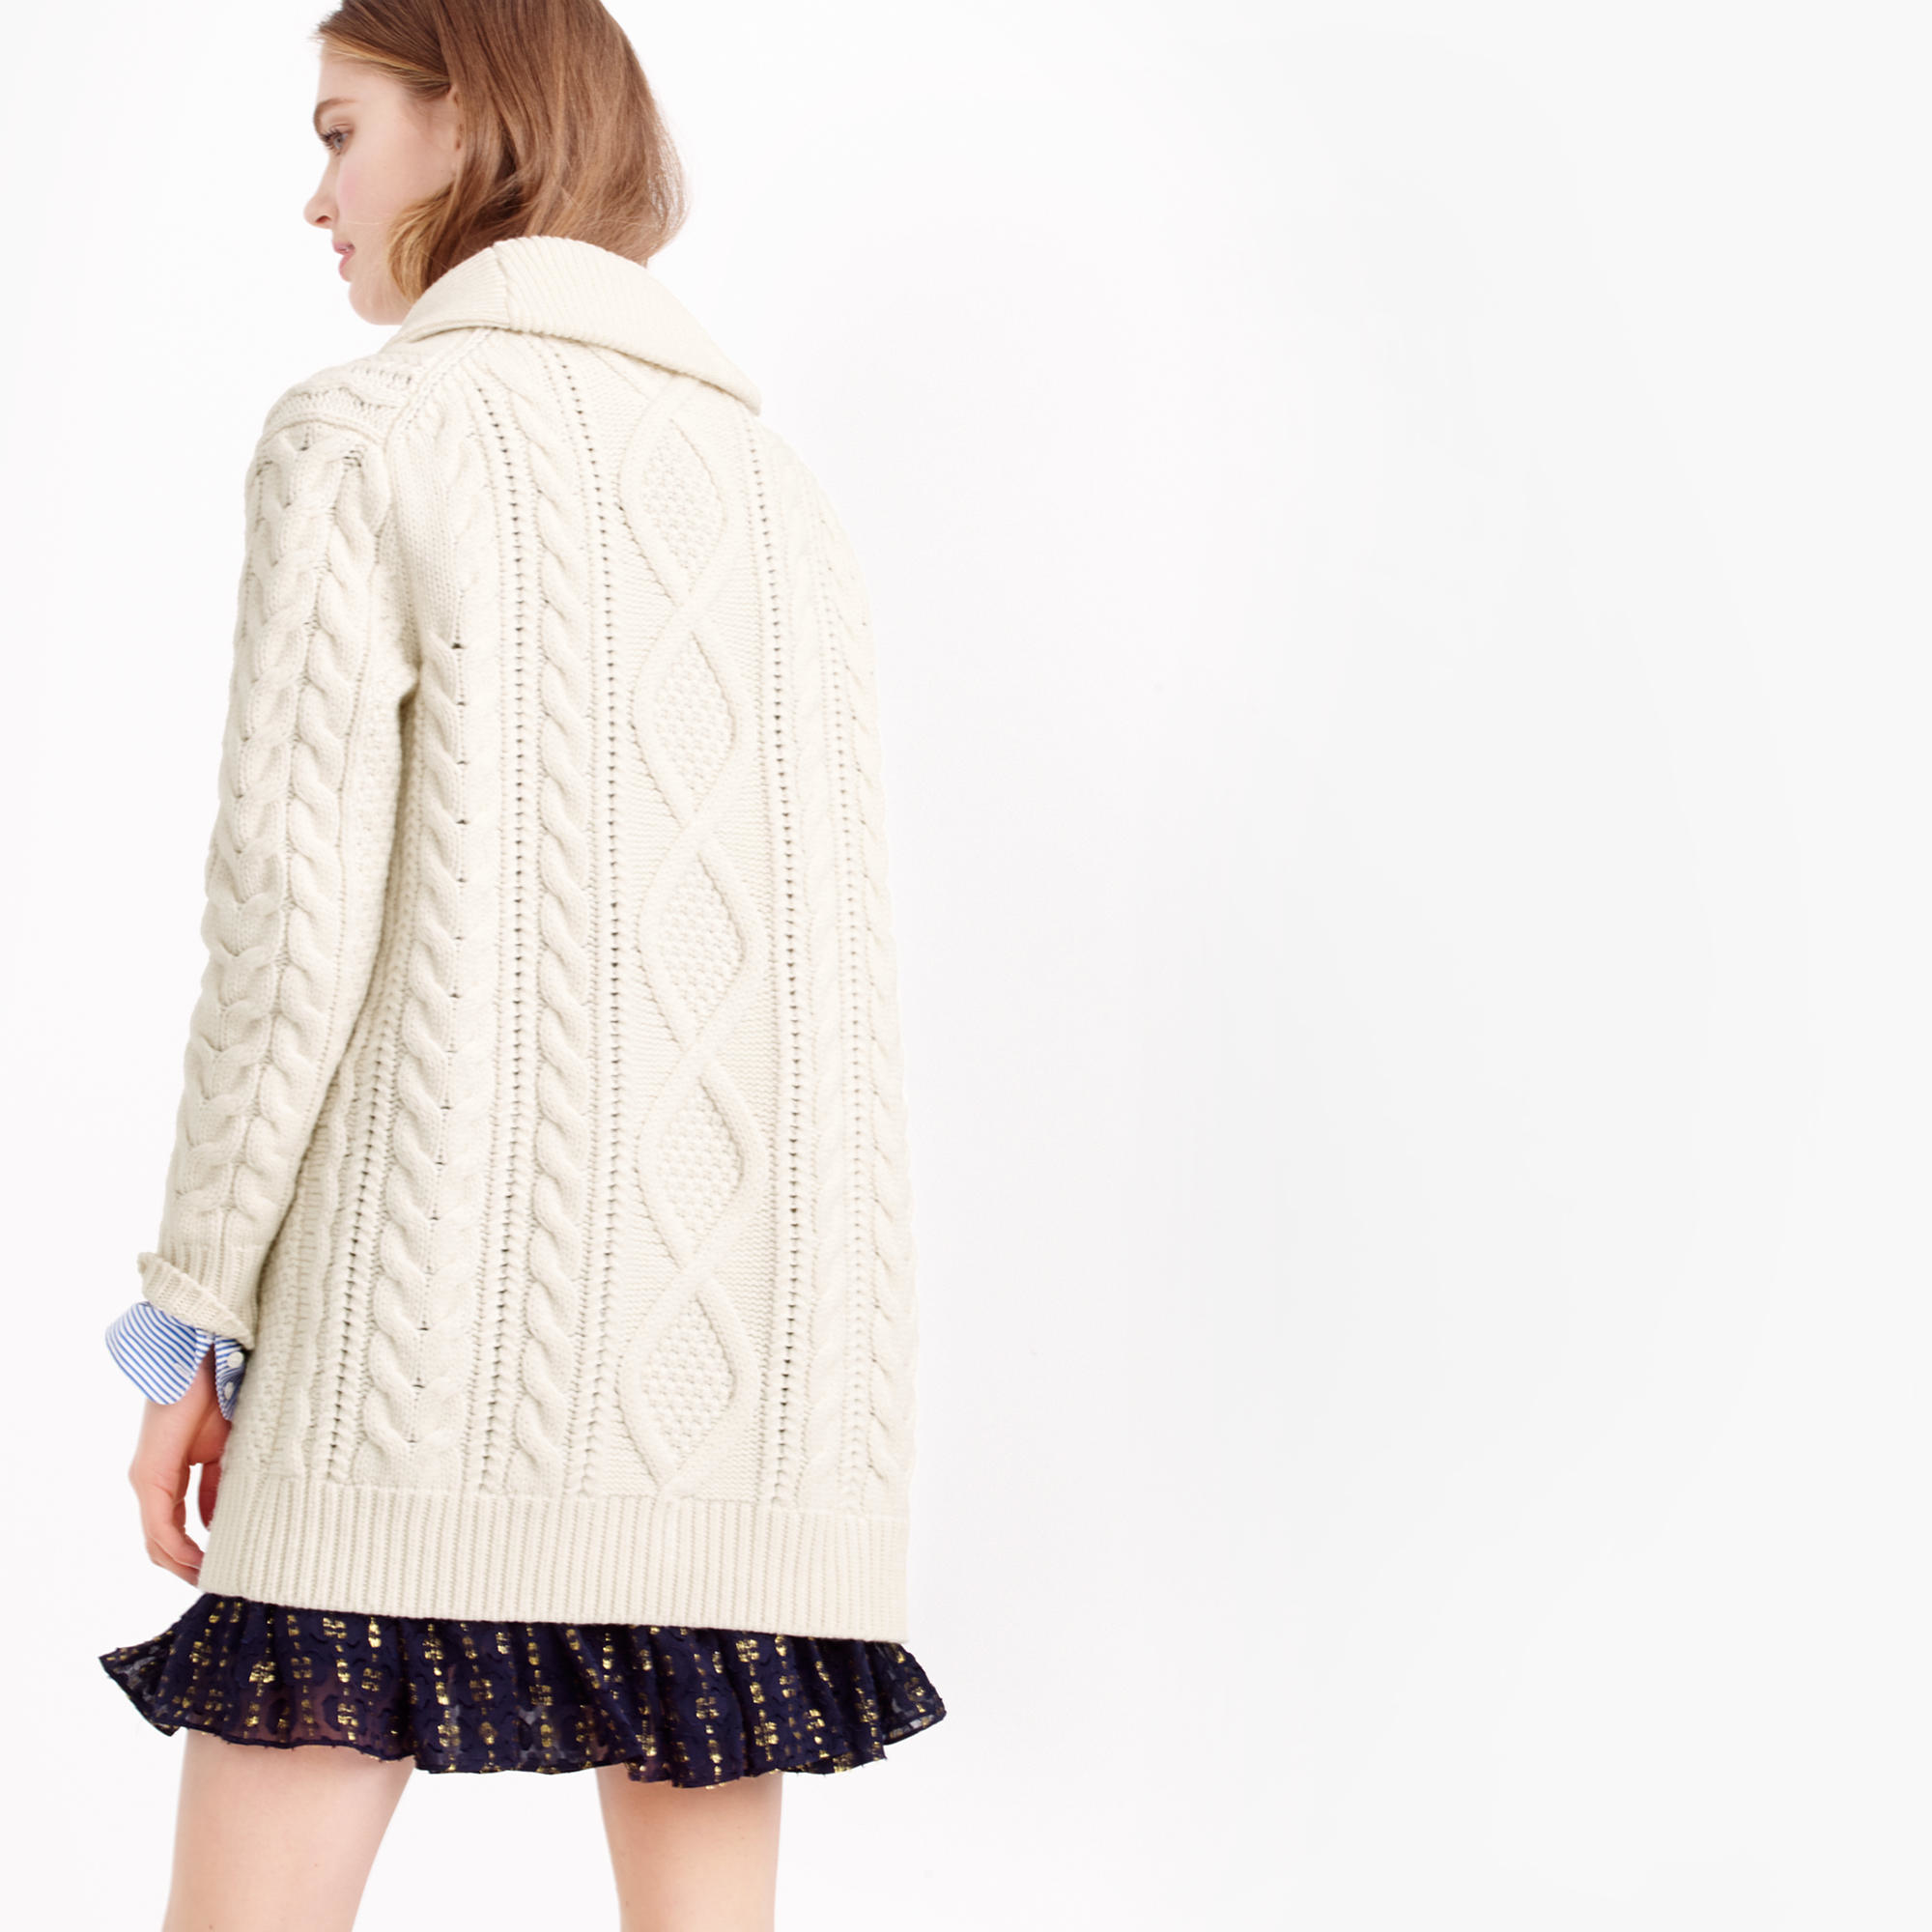 J.crew Shawl-collar Long Cable Cardigan Sweater in Natural   Lyst